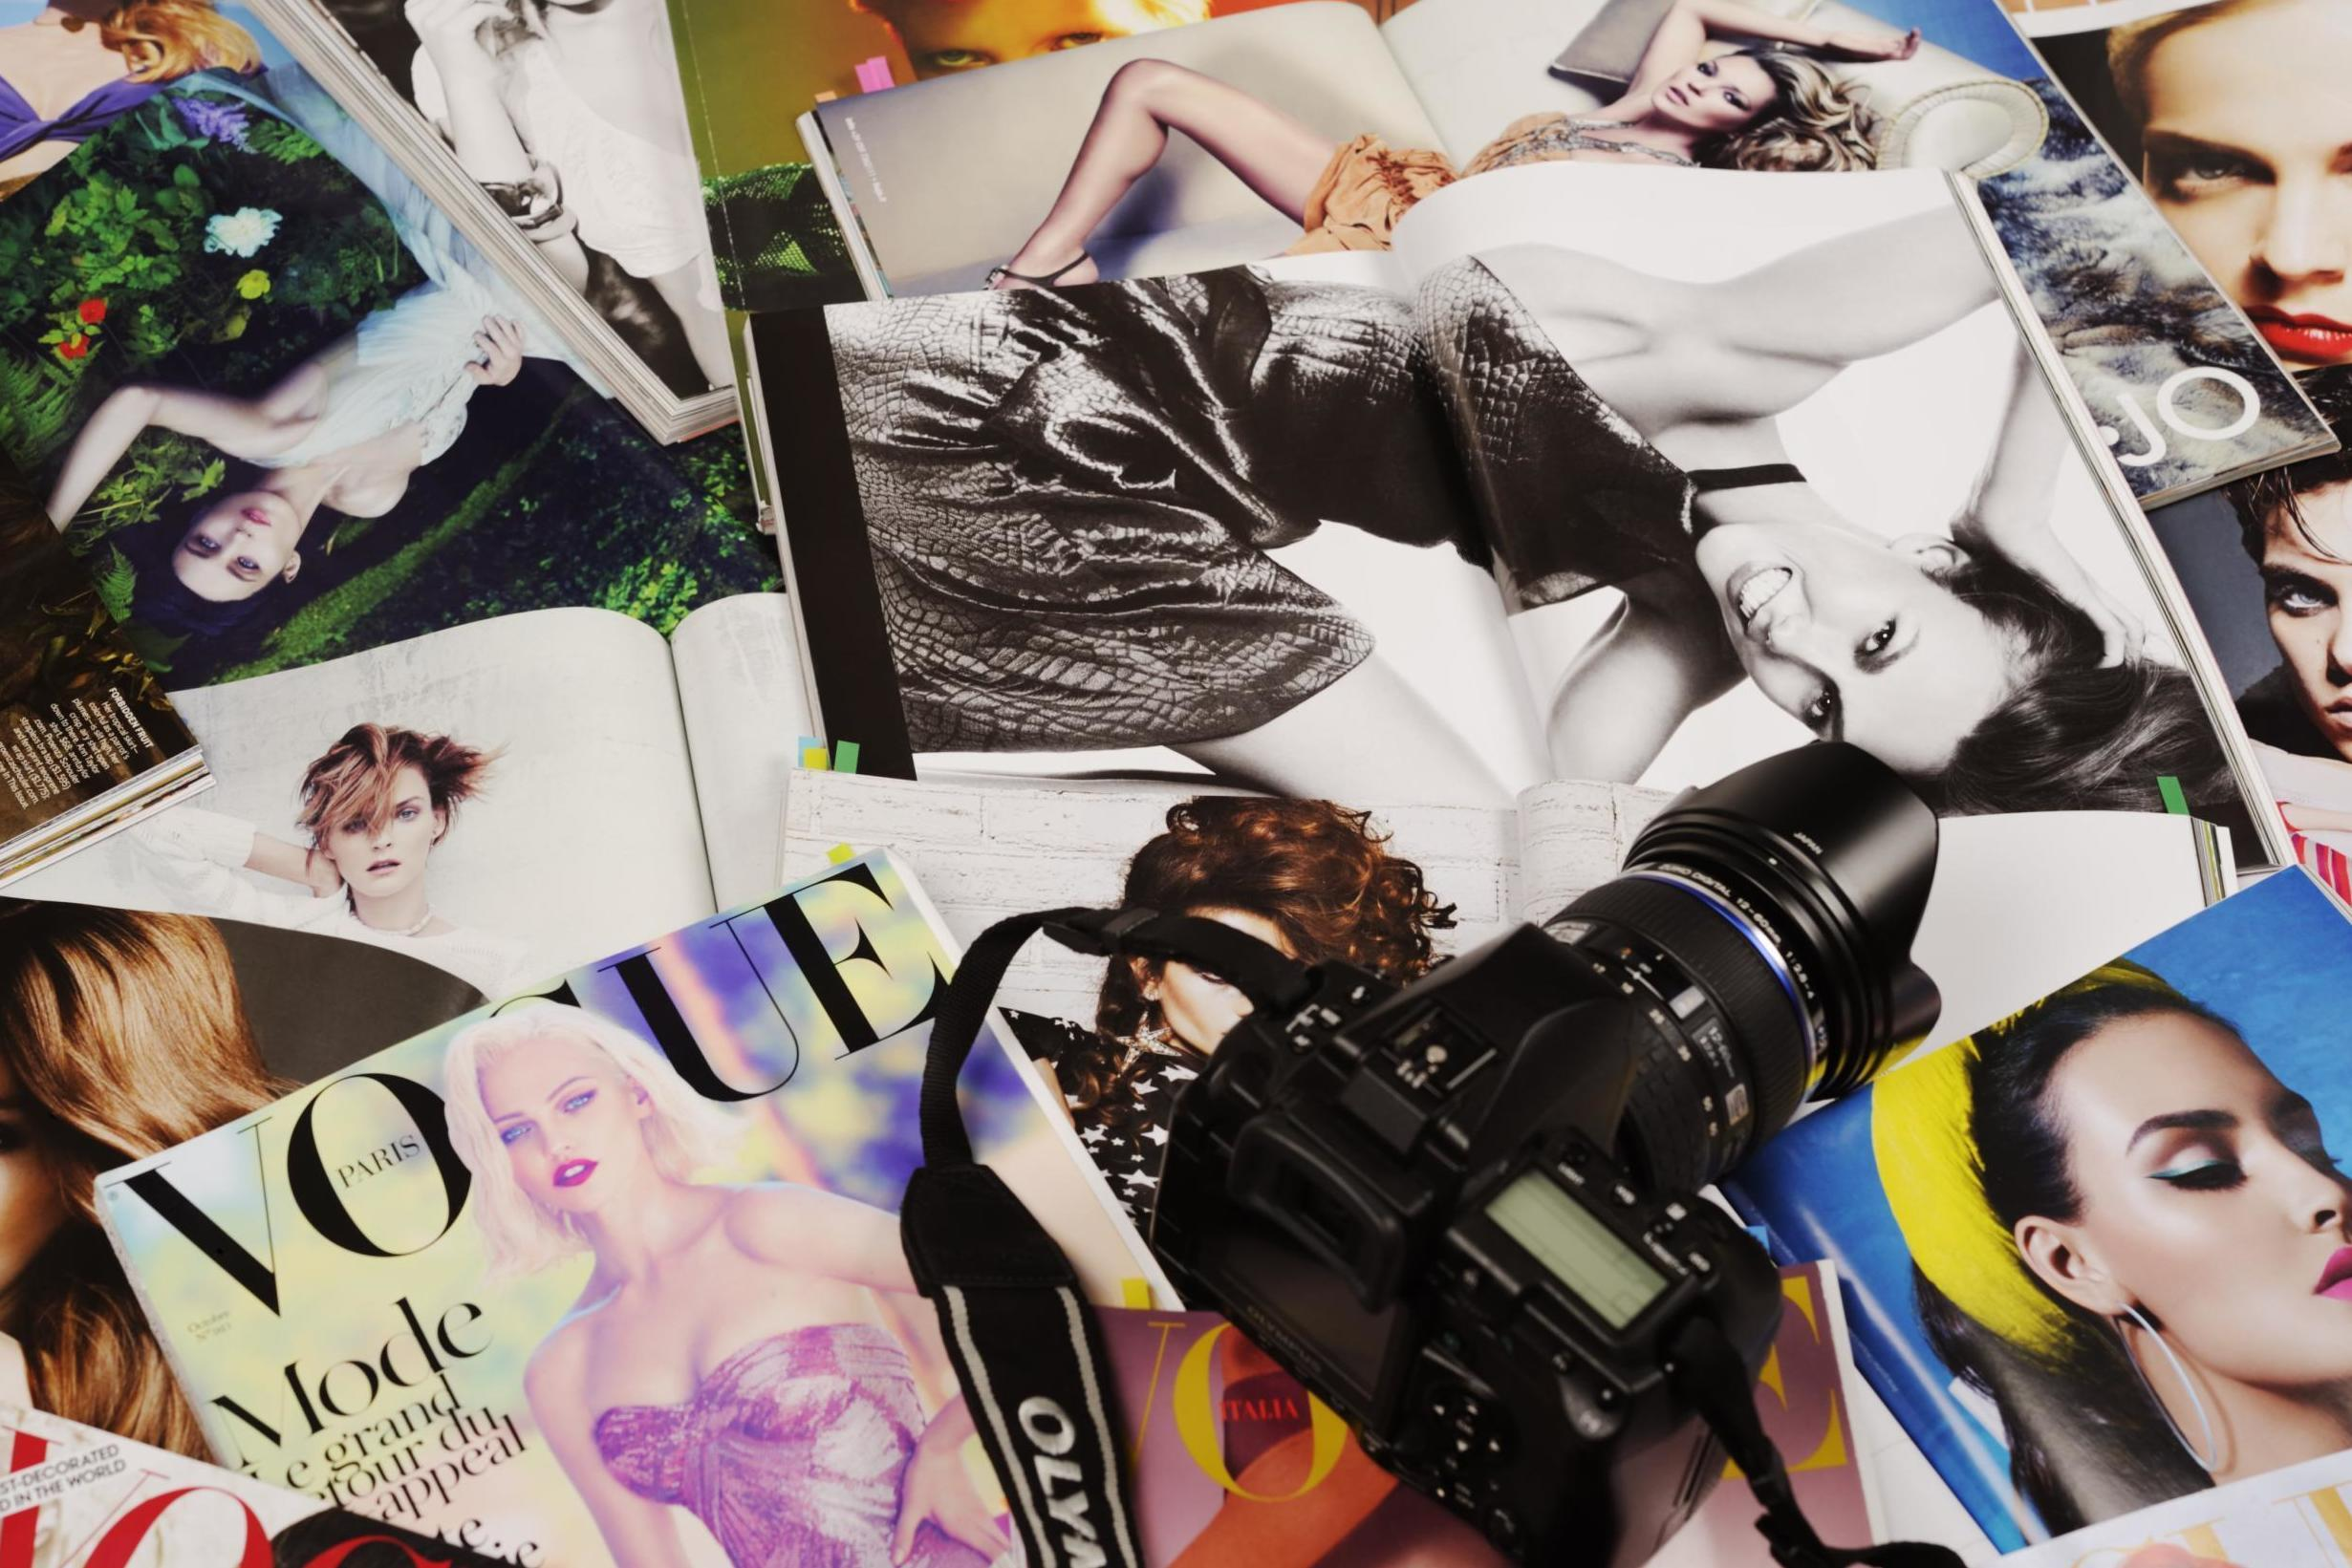 Vogue Italia will not use photo shoots in January issue to make statement about sustainability